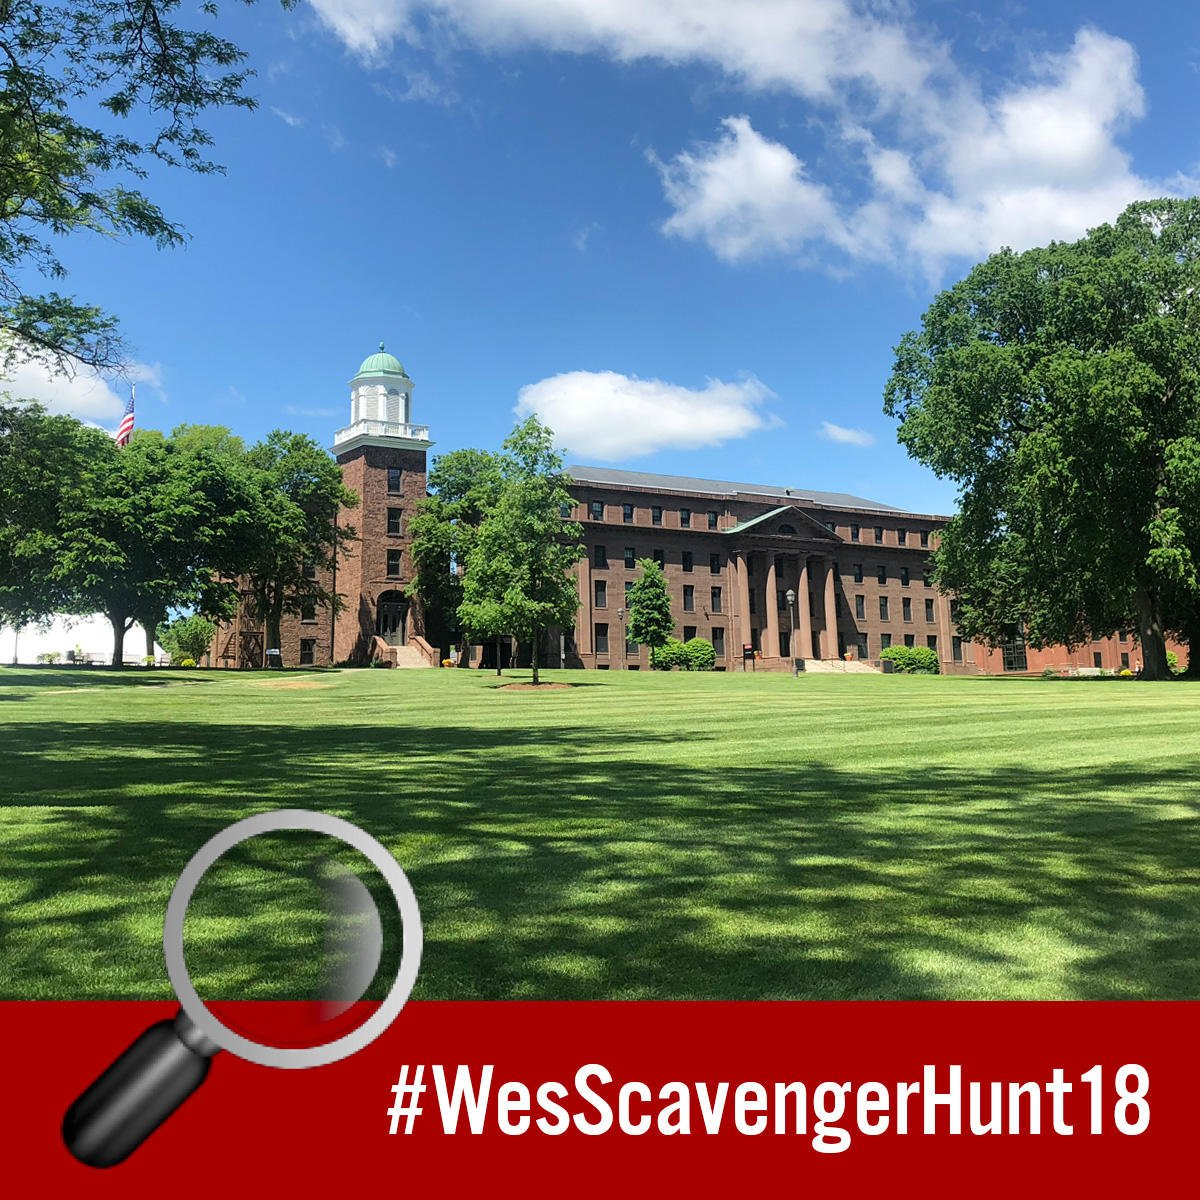 test Twitter Media - 🔍 Clue 5: Take a photo on the spot where a famous minister once spoke at Wes. And a former U.S. President (before they were president). And the creator of our favorite Broadway show. 🌟 #WesScavengerHunt18 #NationalScavengerHuntDay    More clues: https://t.co/iwQIXnDb7K https://t.co/O0KTgti4JV